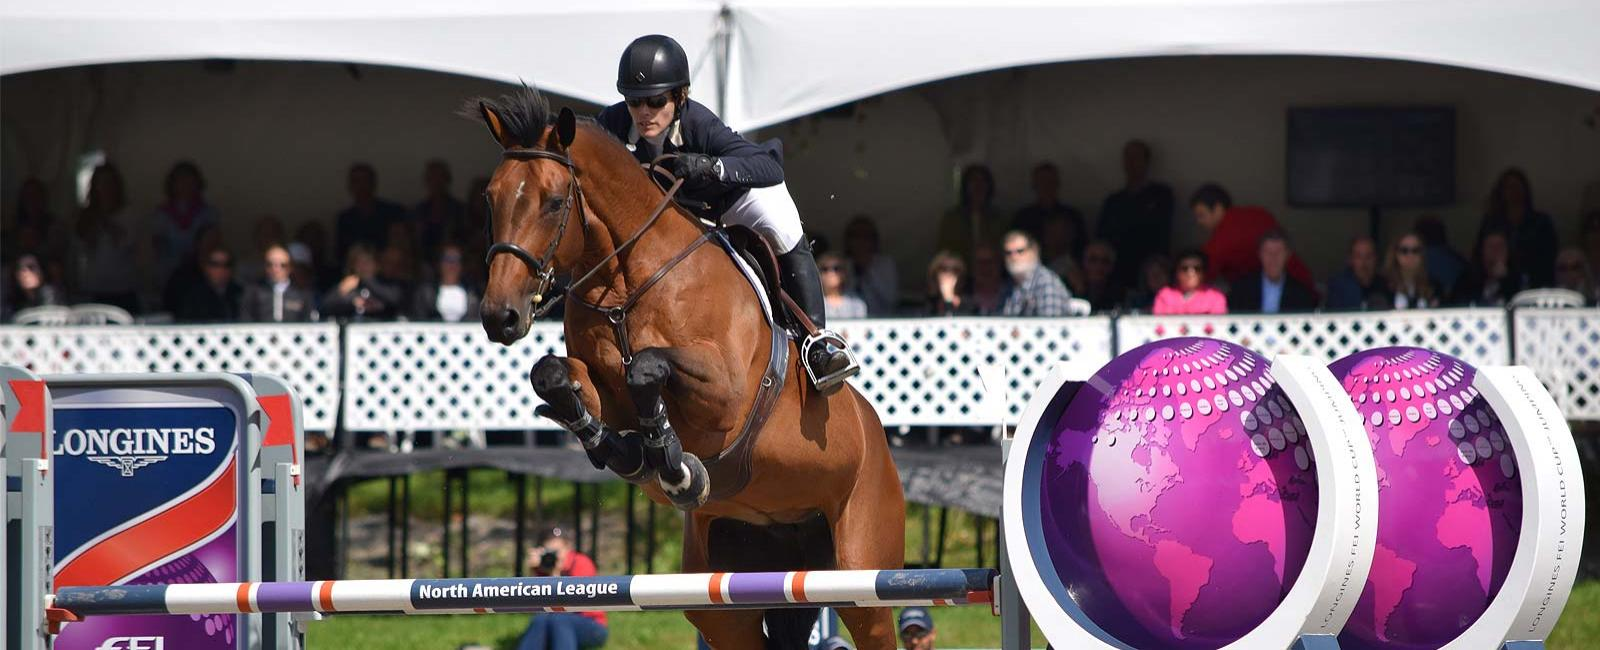 Longines FEI World Cup North American League - Bromont; Jumping; 2017; Isabelle Lapierre; Cescha M